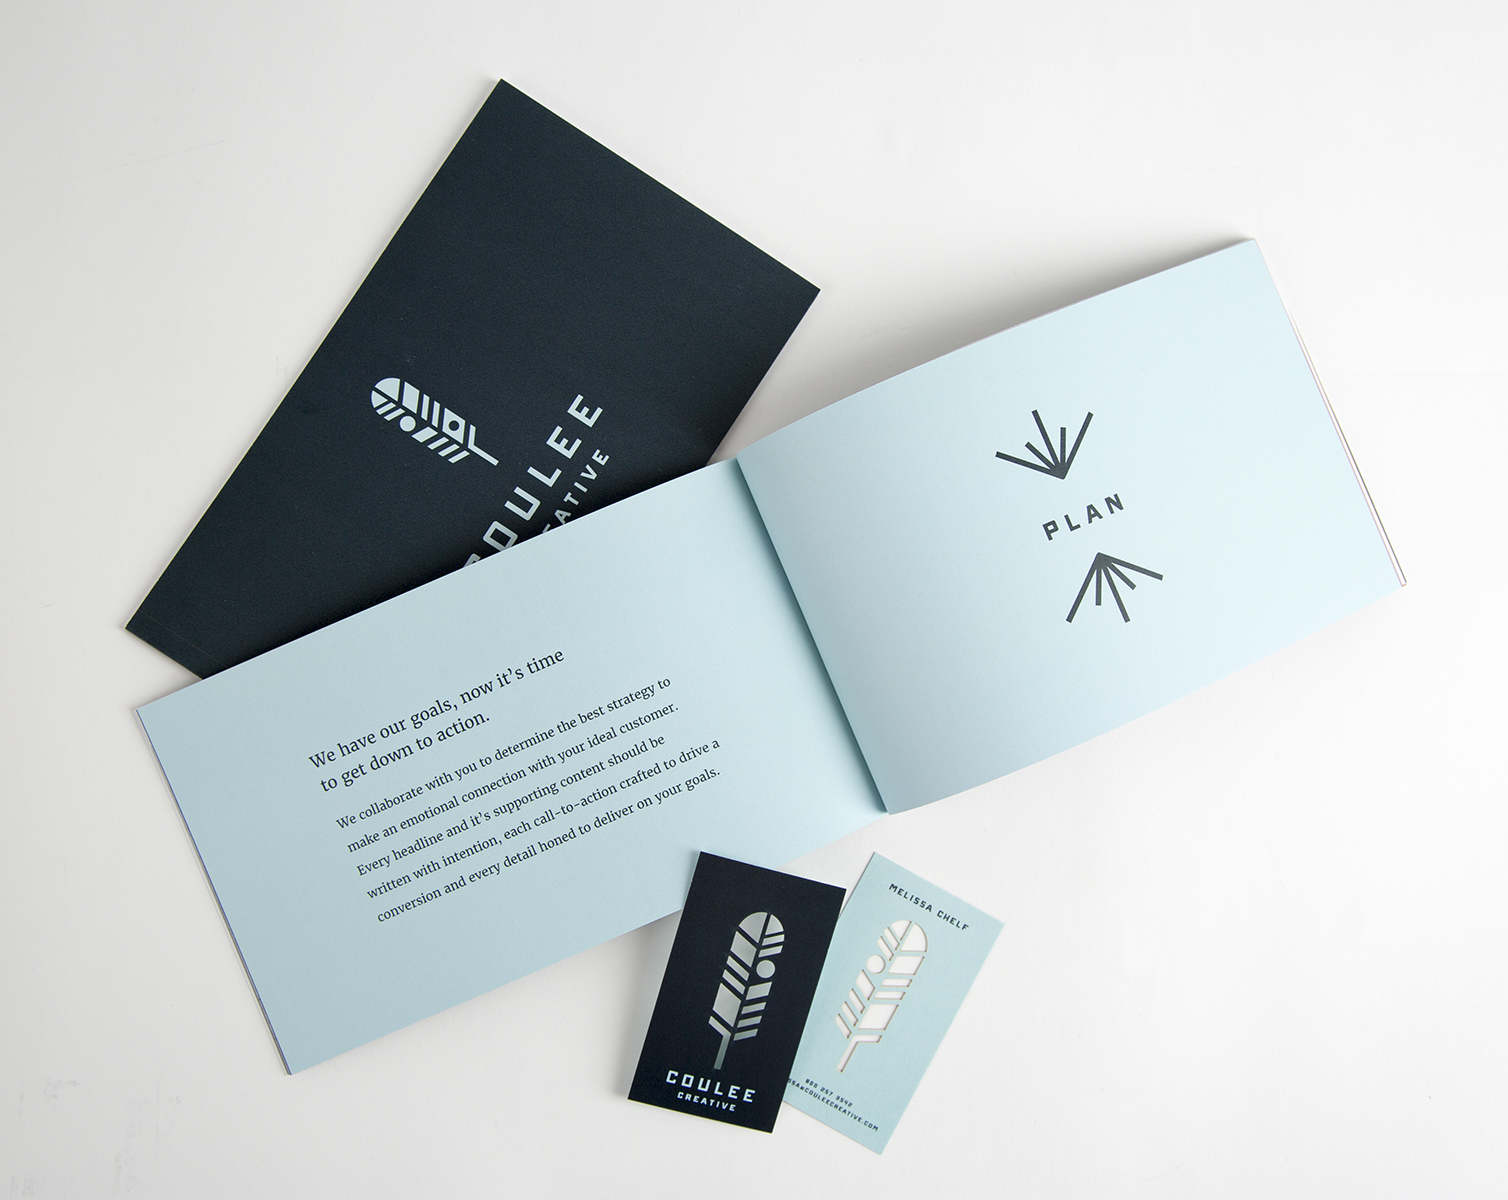 Perfect Bound Brand Book and Digital Laser Cut Business Cards  Design